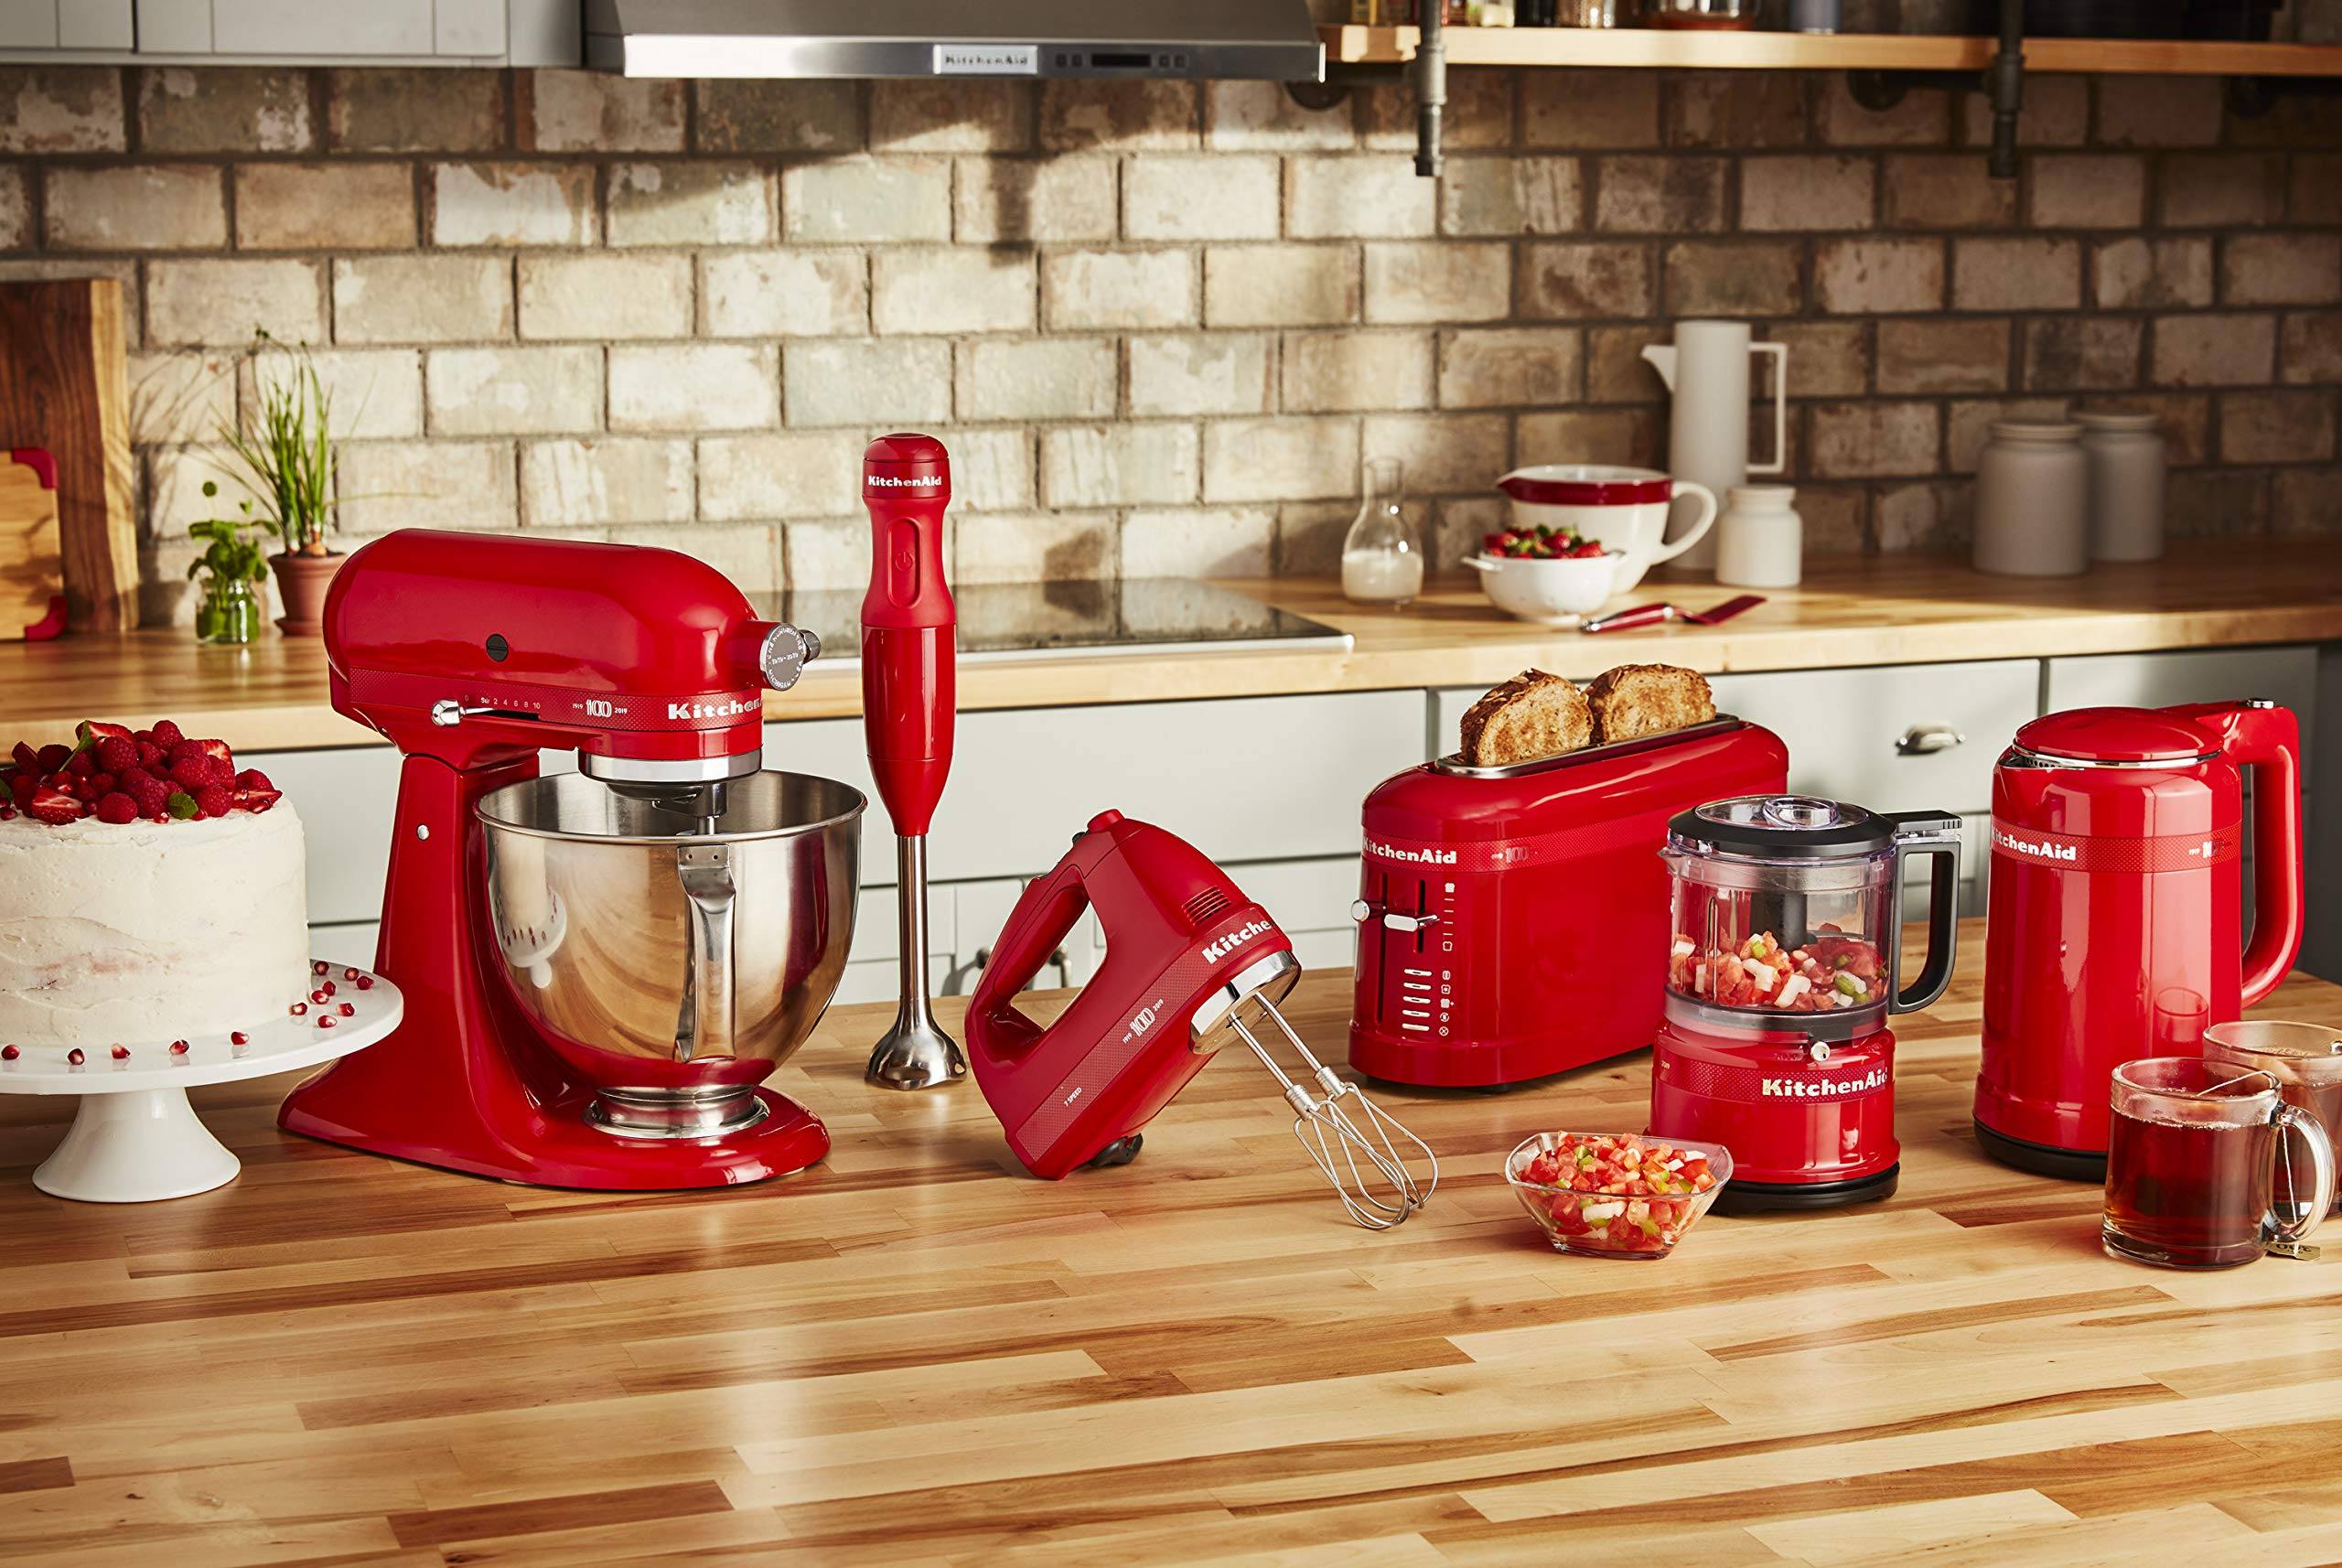 KitchenAid KHM7210QHSD 100 Year Limited Edition Queen of Hearts Hand Mixer, 7 Speed, Passion Red by KitchenAid (Image #4)